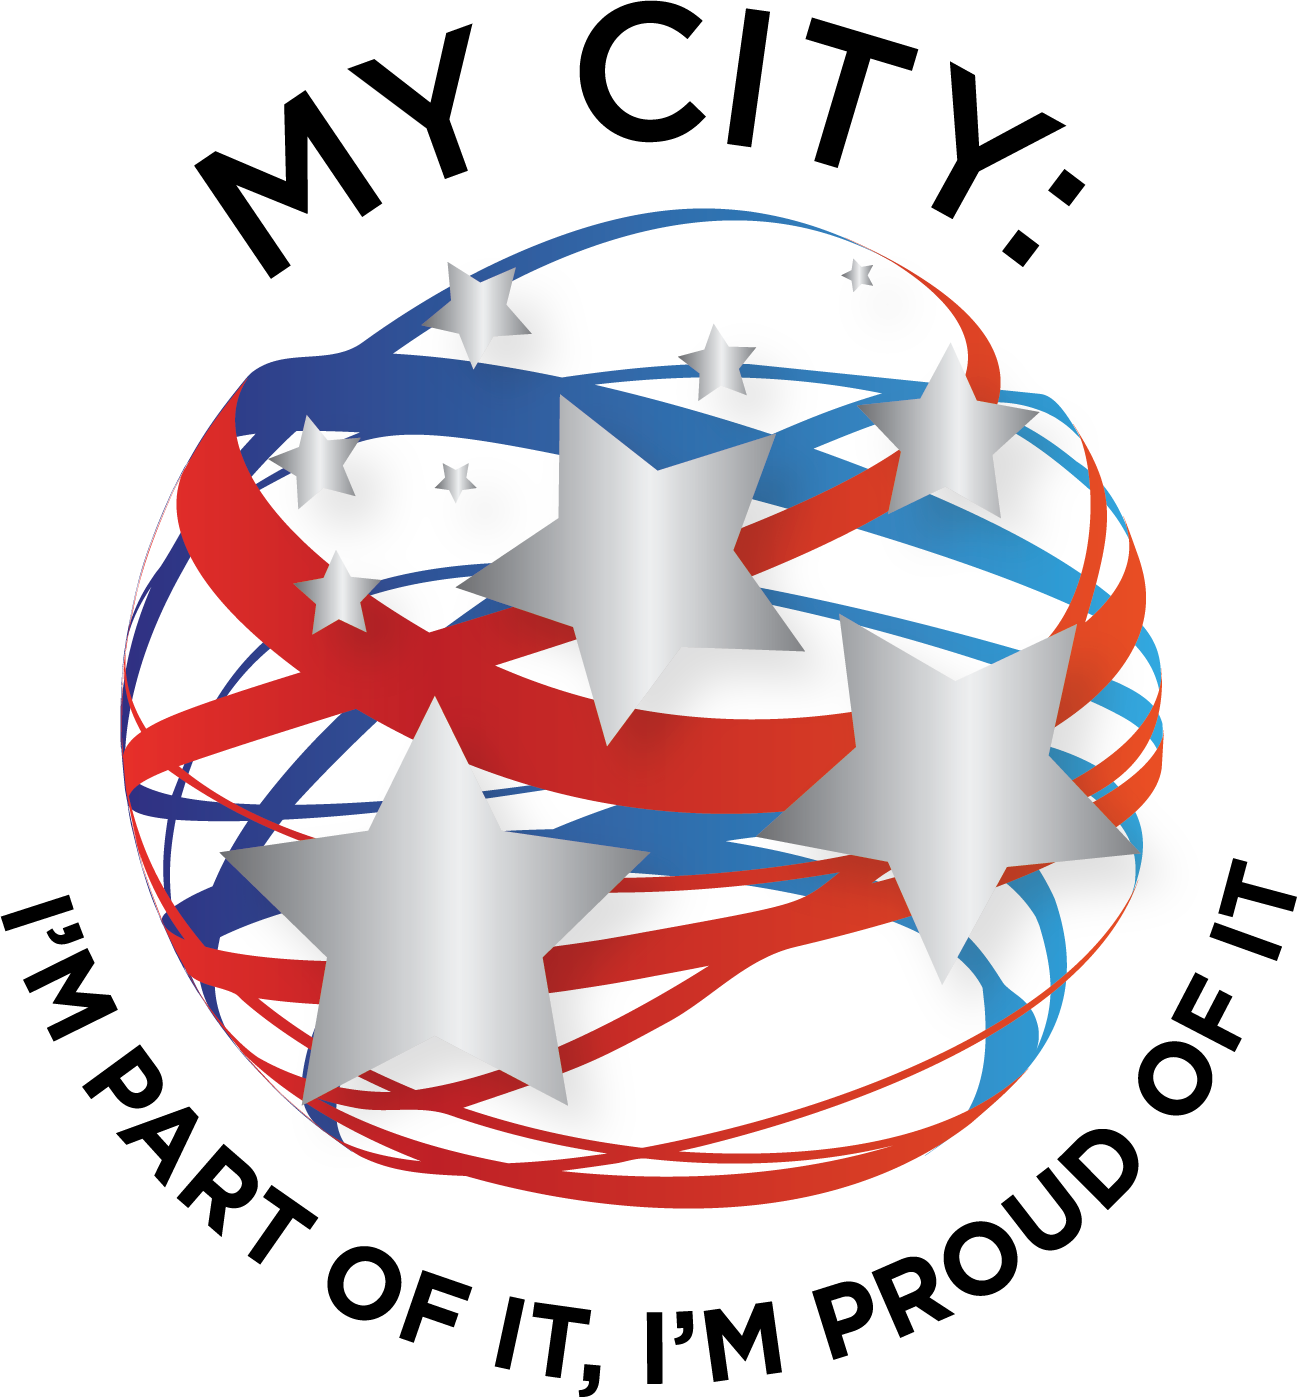 2017 city goverment week logo - city